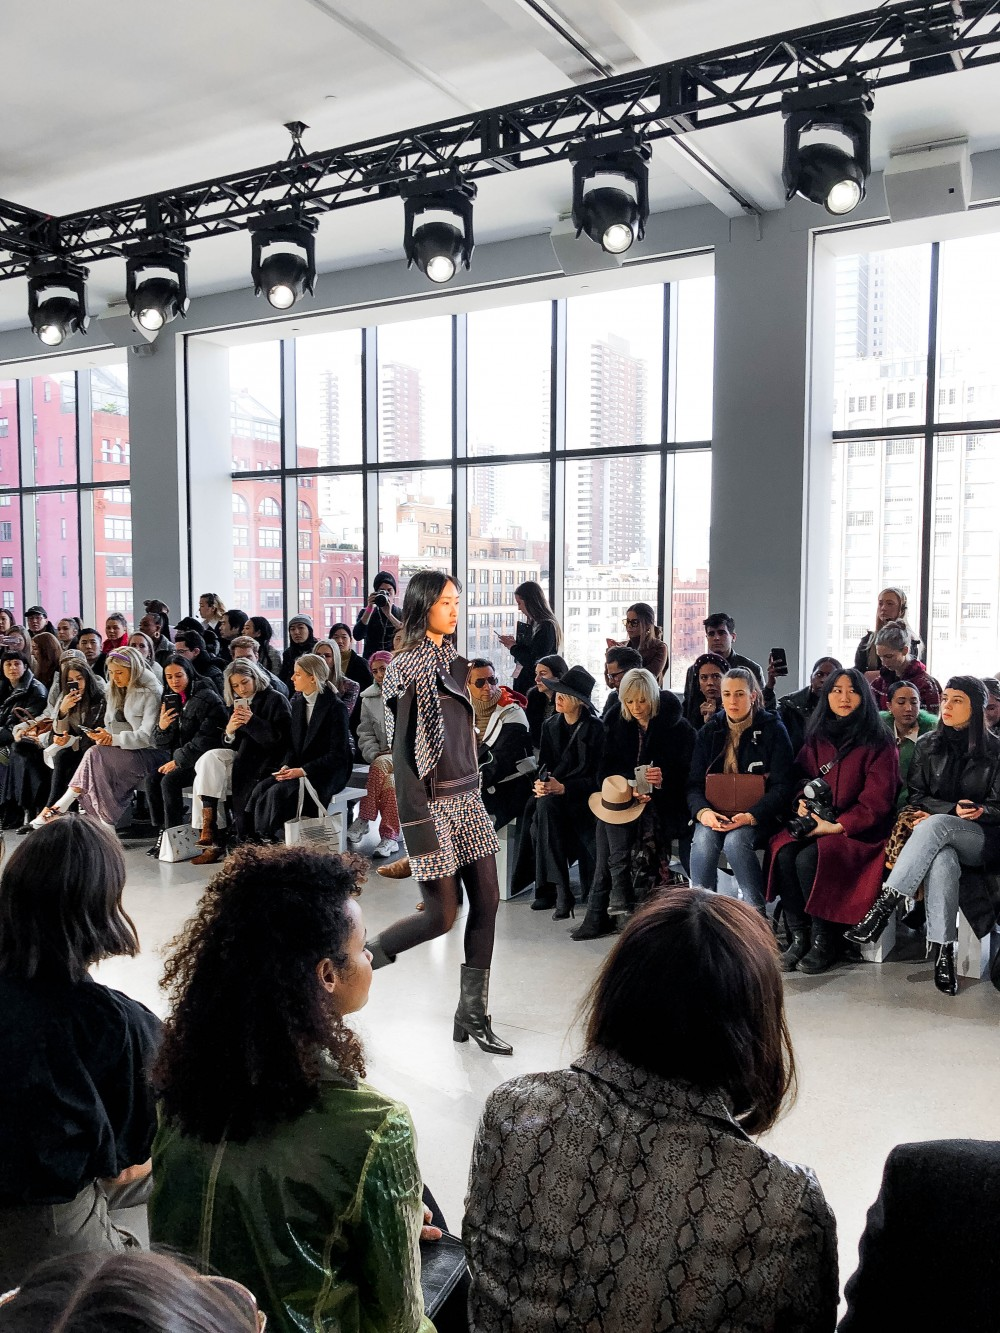 Claudia Li FW19 Runway Collection at NYFW. Click on the photo to check out the full post, get backstage access and see my favorite looks! #NYFW #ClaudiaLi #SpringStudios #Runway